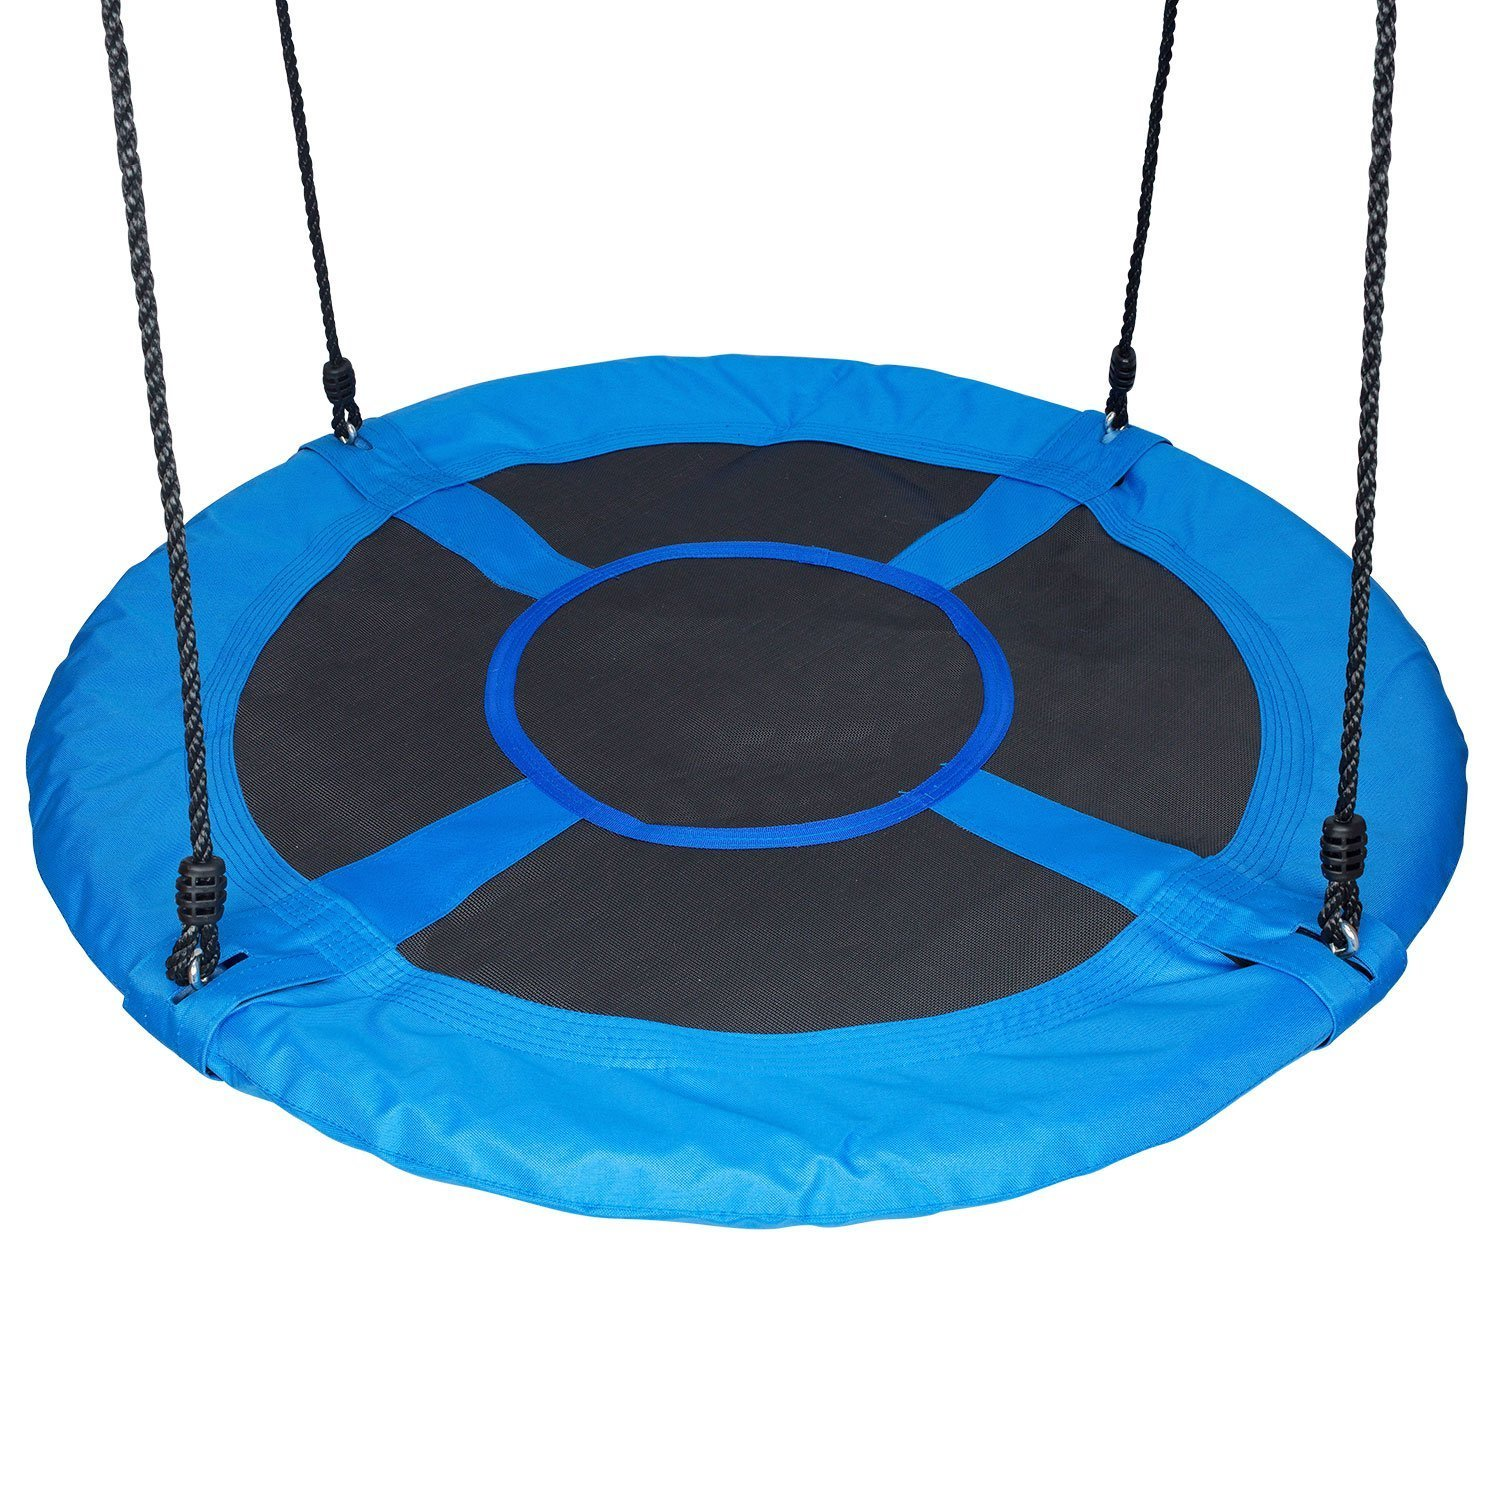 HYCLAT 40'' Saucer Tree Swing Durable Strong Blue Large Size Wed Swing Activity One Completed Set by HYCLAT